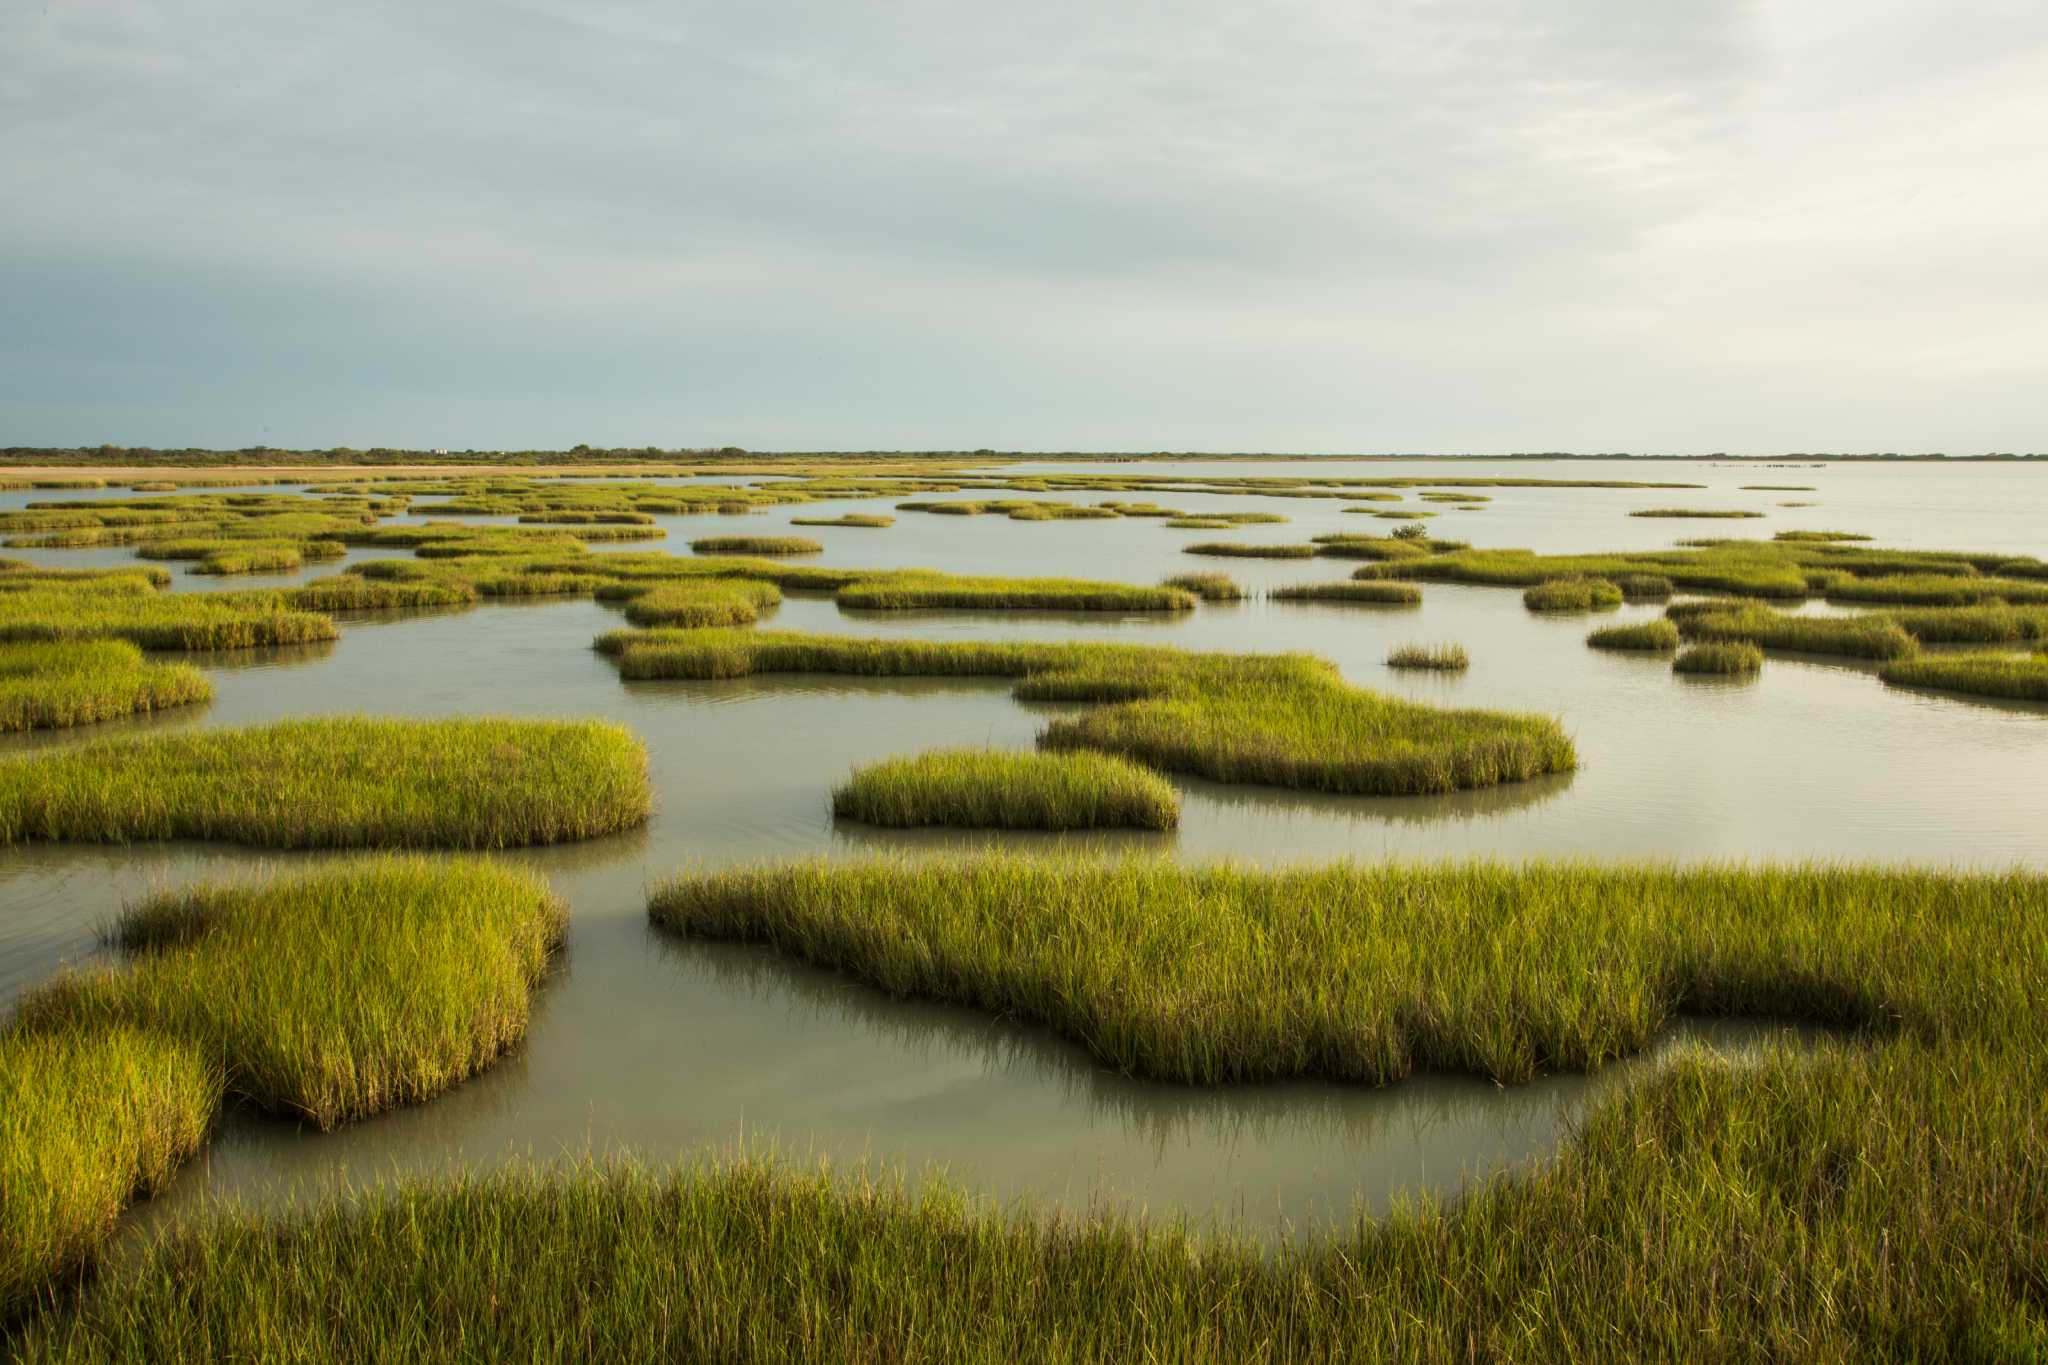 Pictures of Gulf Coastal Plains by Katie Debetaz on Prezi Pictures of the gulf coastal plains